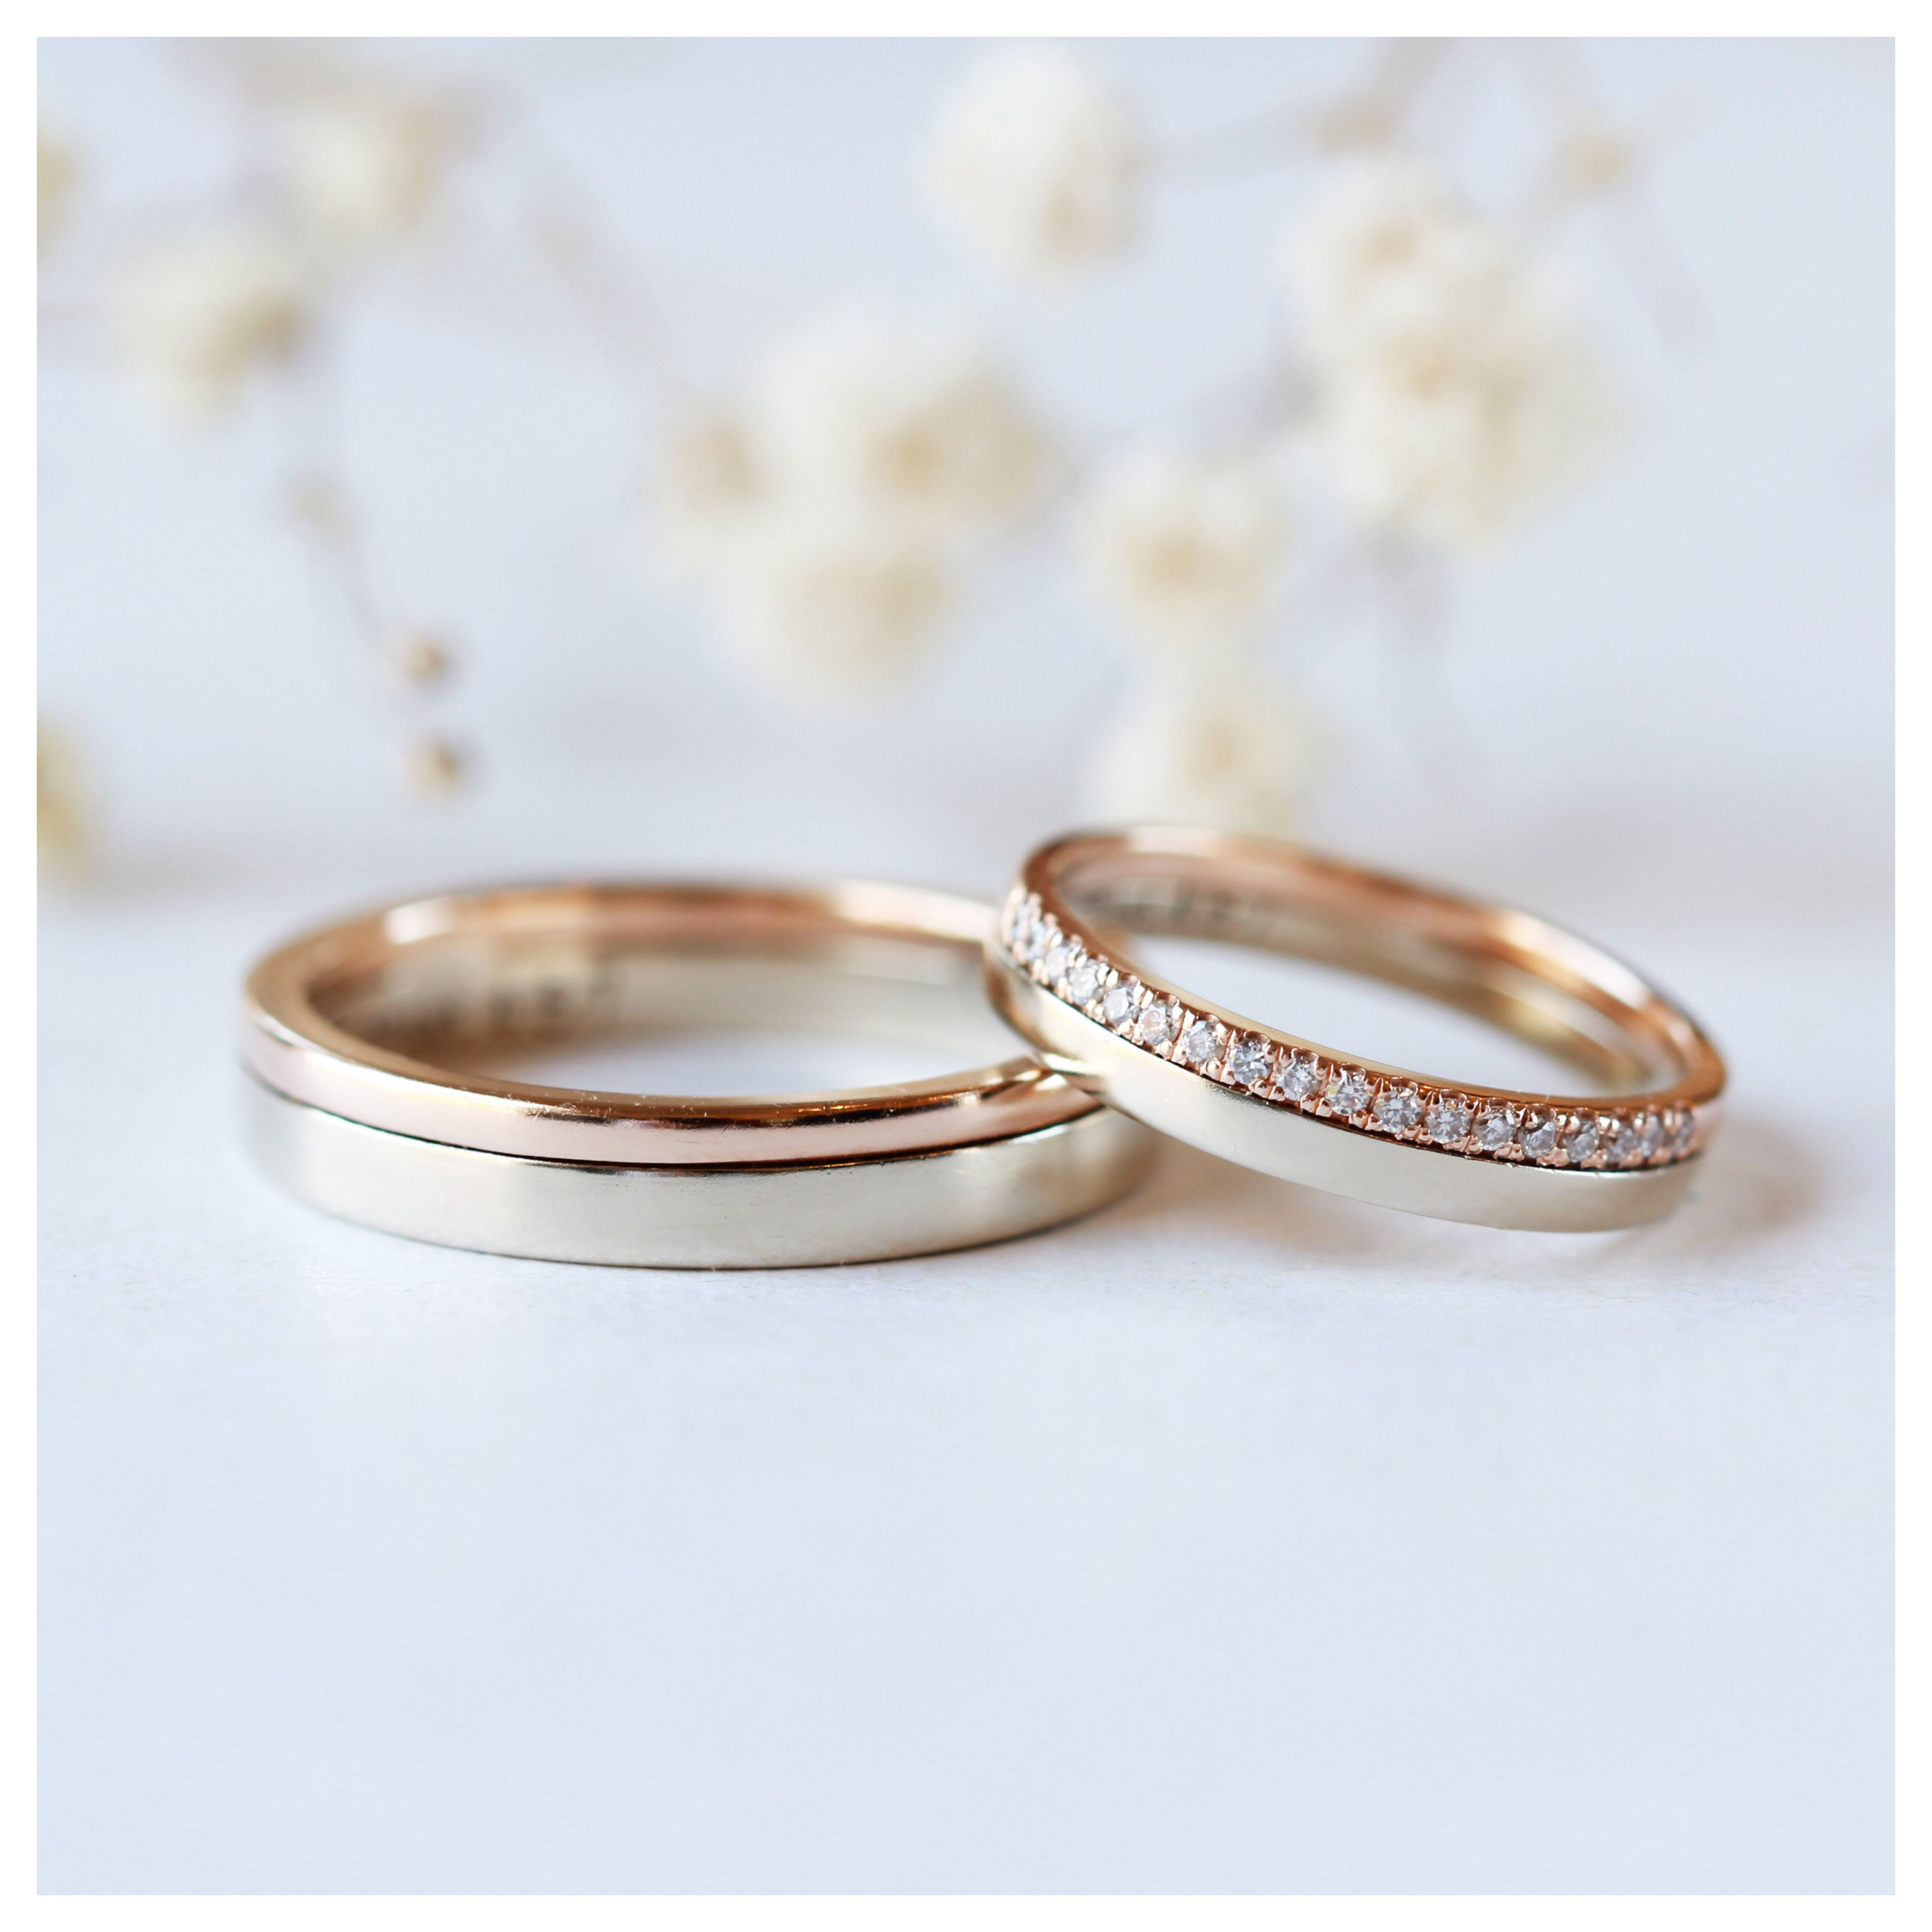 His And Hers Couple Ring His And Hers Wedding Band Diamond Couple Ring Alternativ In 2020 Couple Wedding Rings Wedding Rings Sets His And Hers Wedding Ring Sets Simple